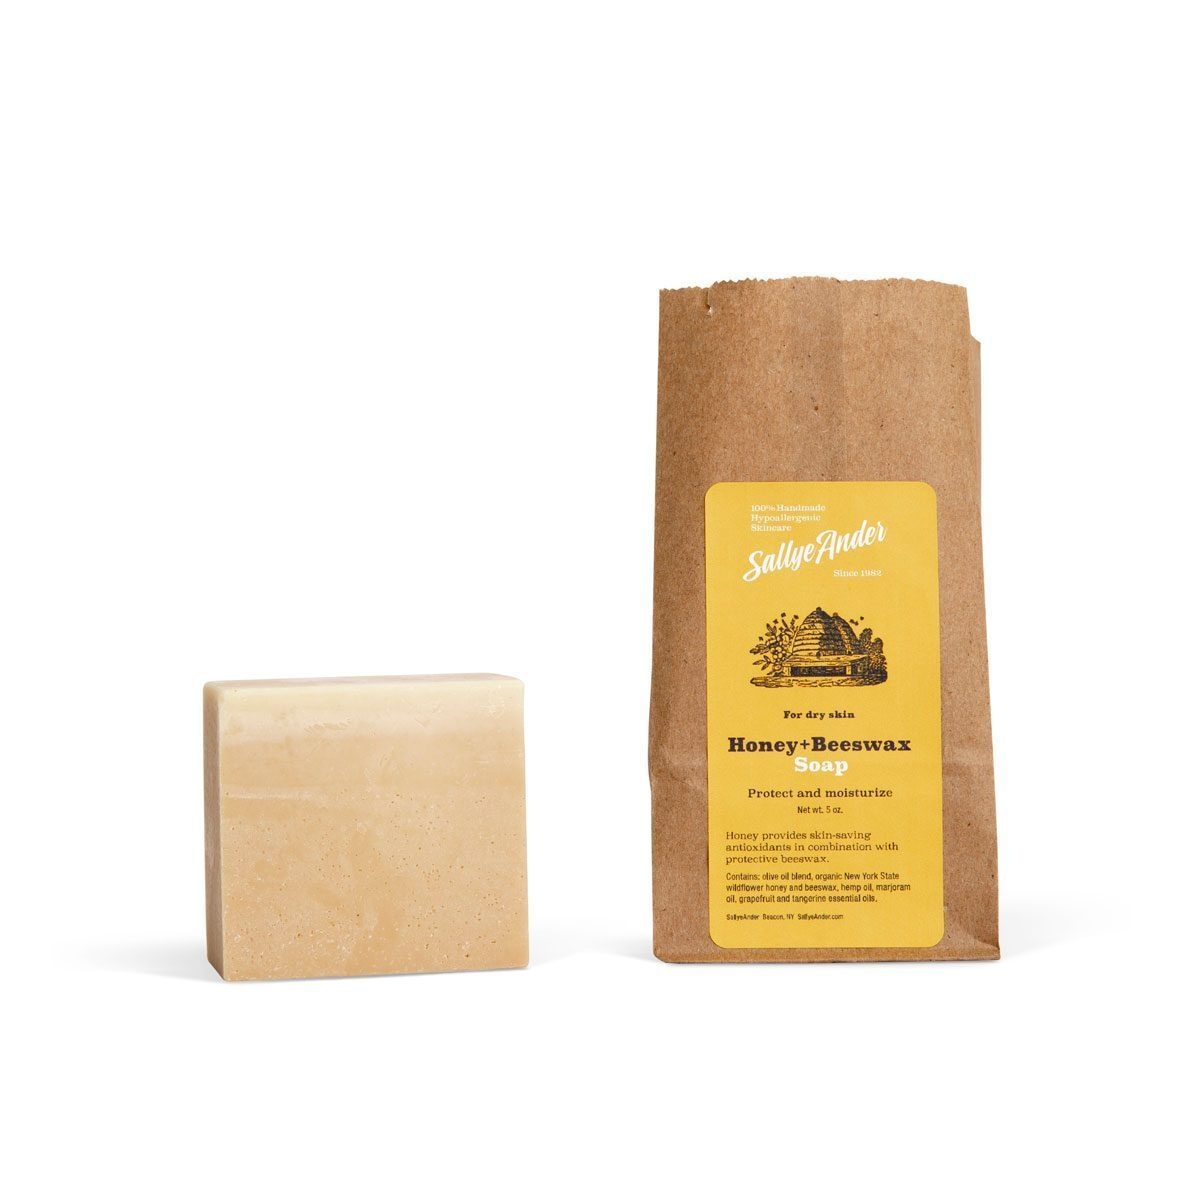 Honey & Beeswax Soap